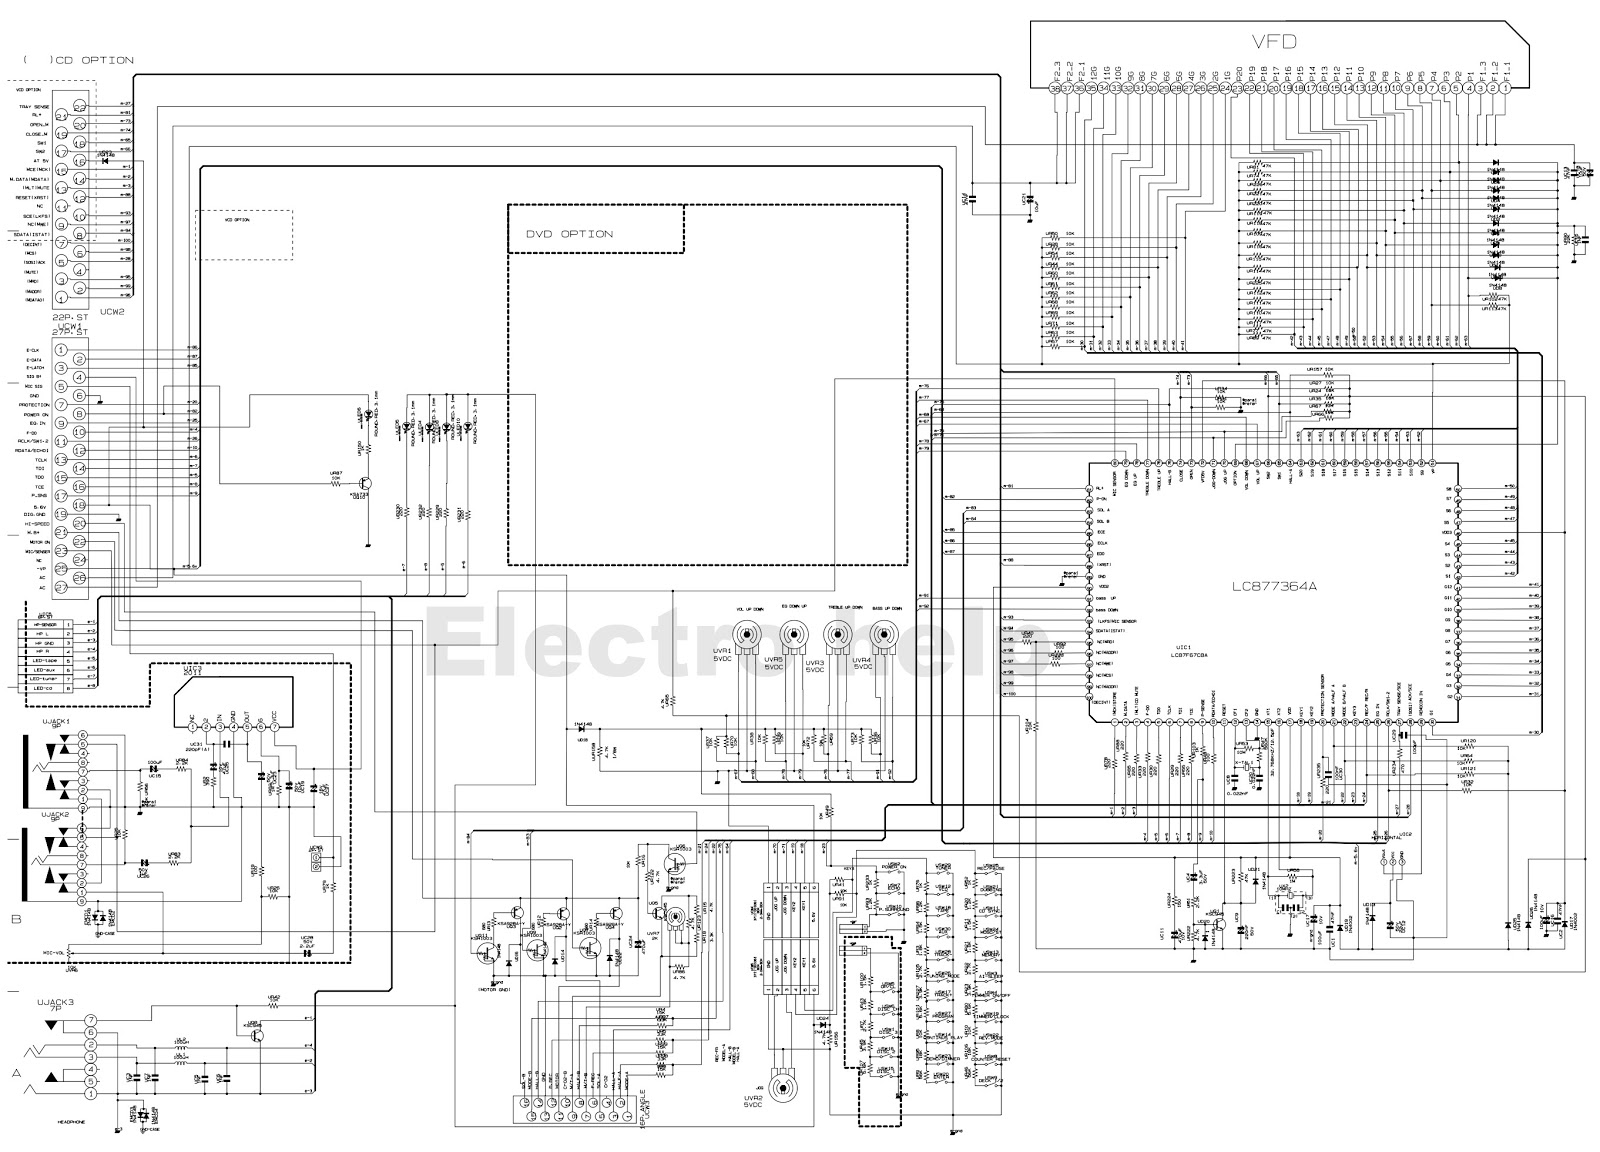 Manguonblog Thng Hai 2016 Electronic Circuit Diagram Tv Vertical Using La78041 La78040 Schematic Click On The Schematics To Zoom In